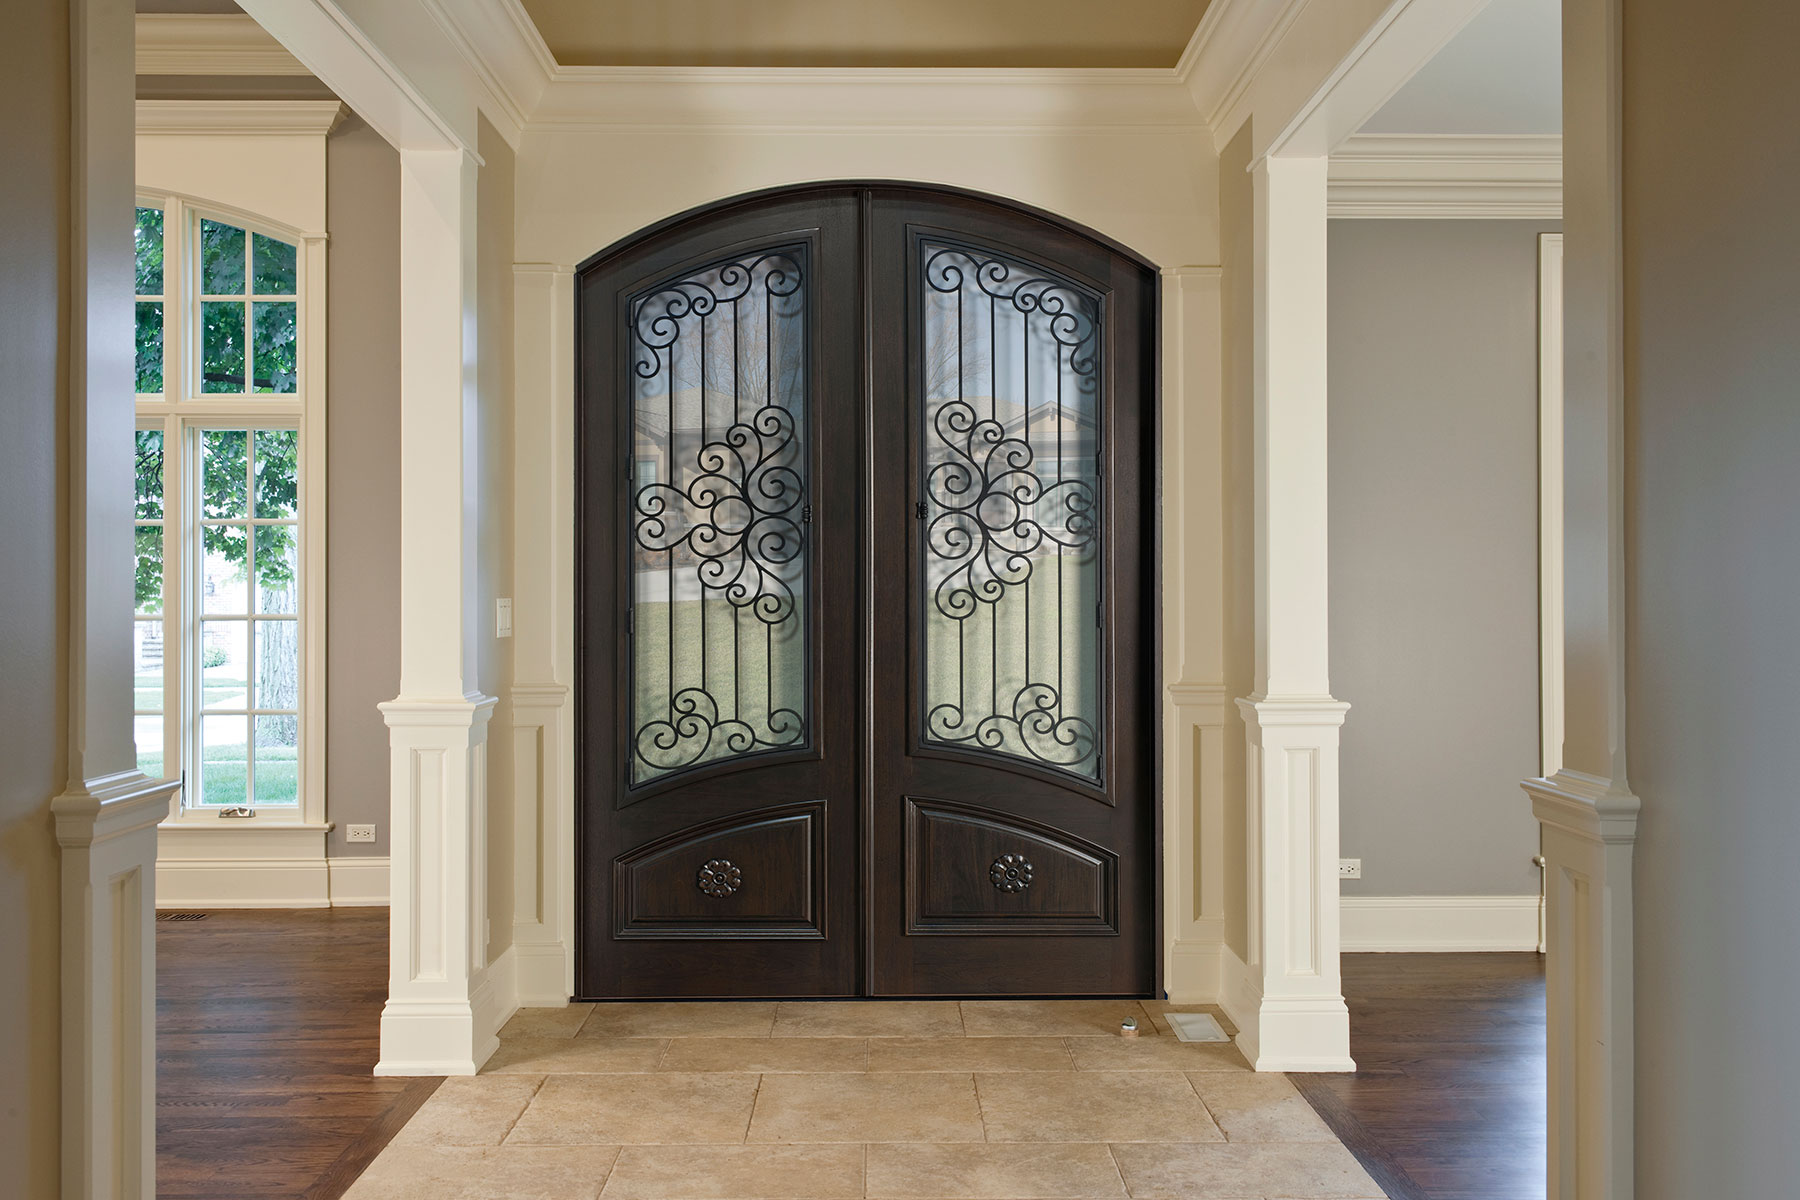 Heritage Front Entry Doors In Chicago Il At Glenview Haus